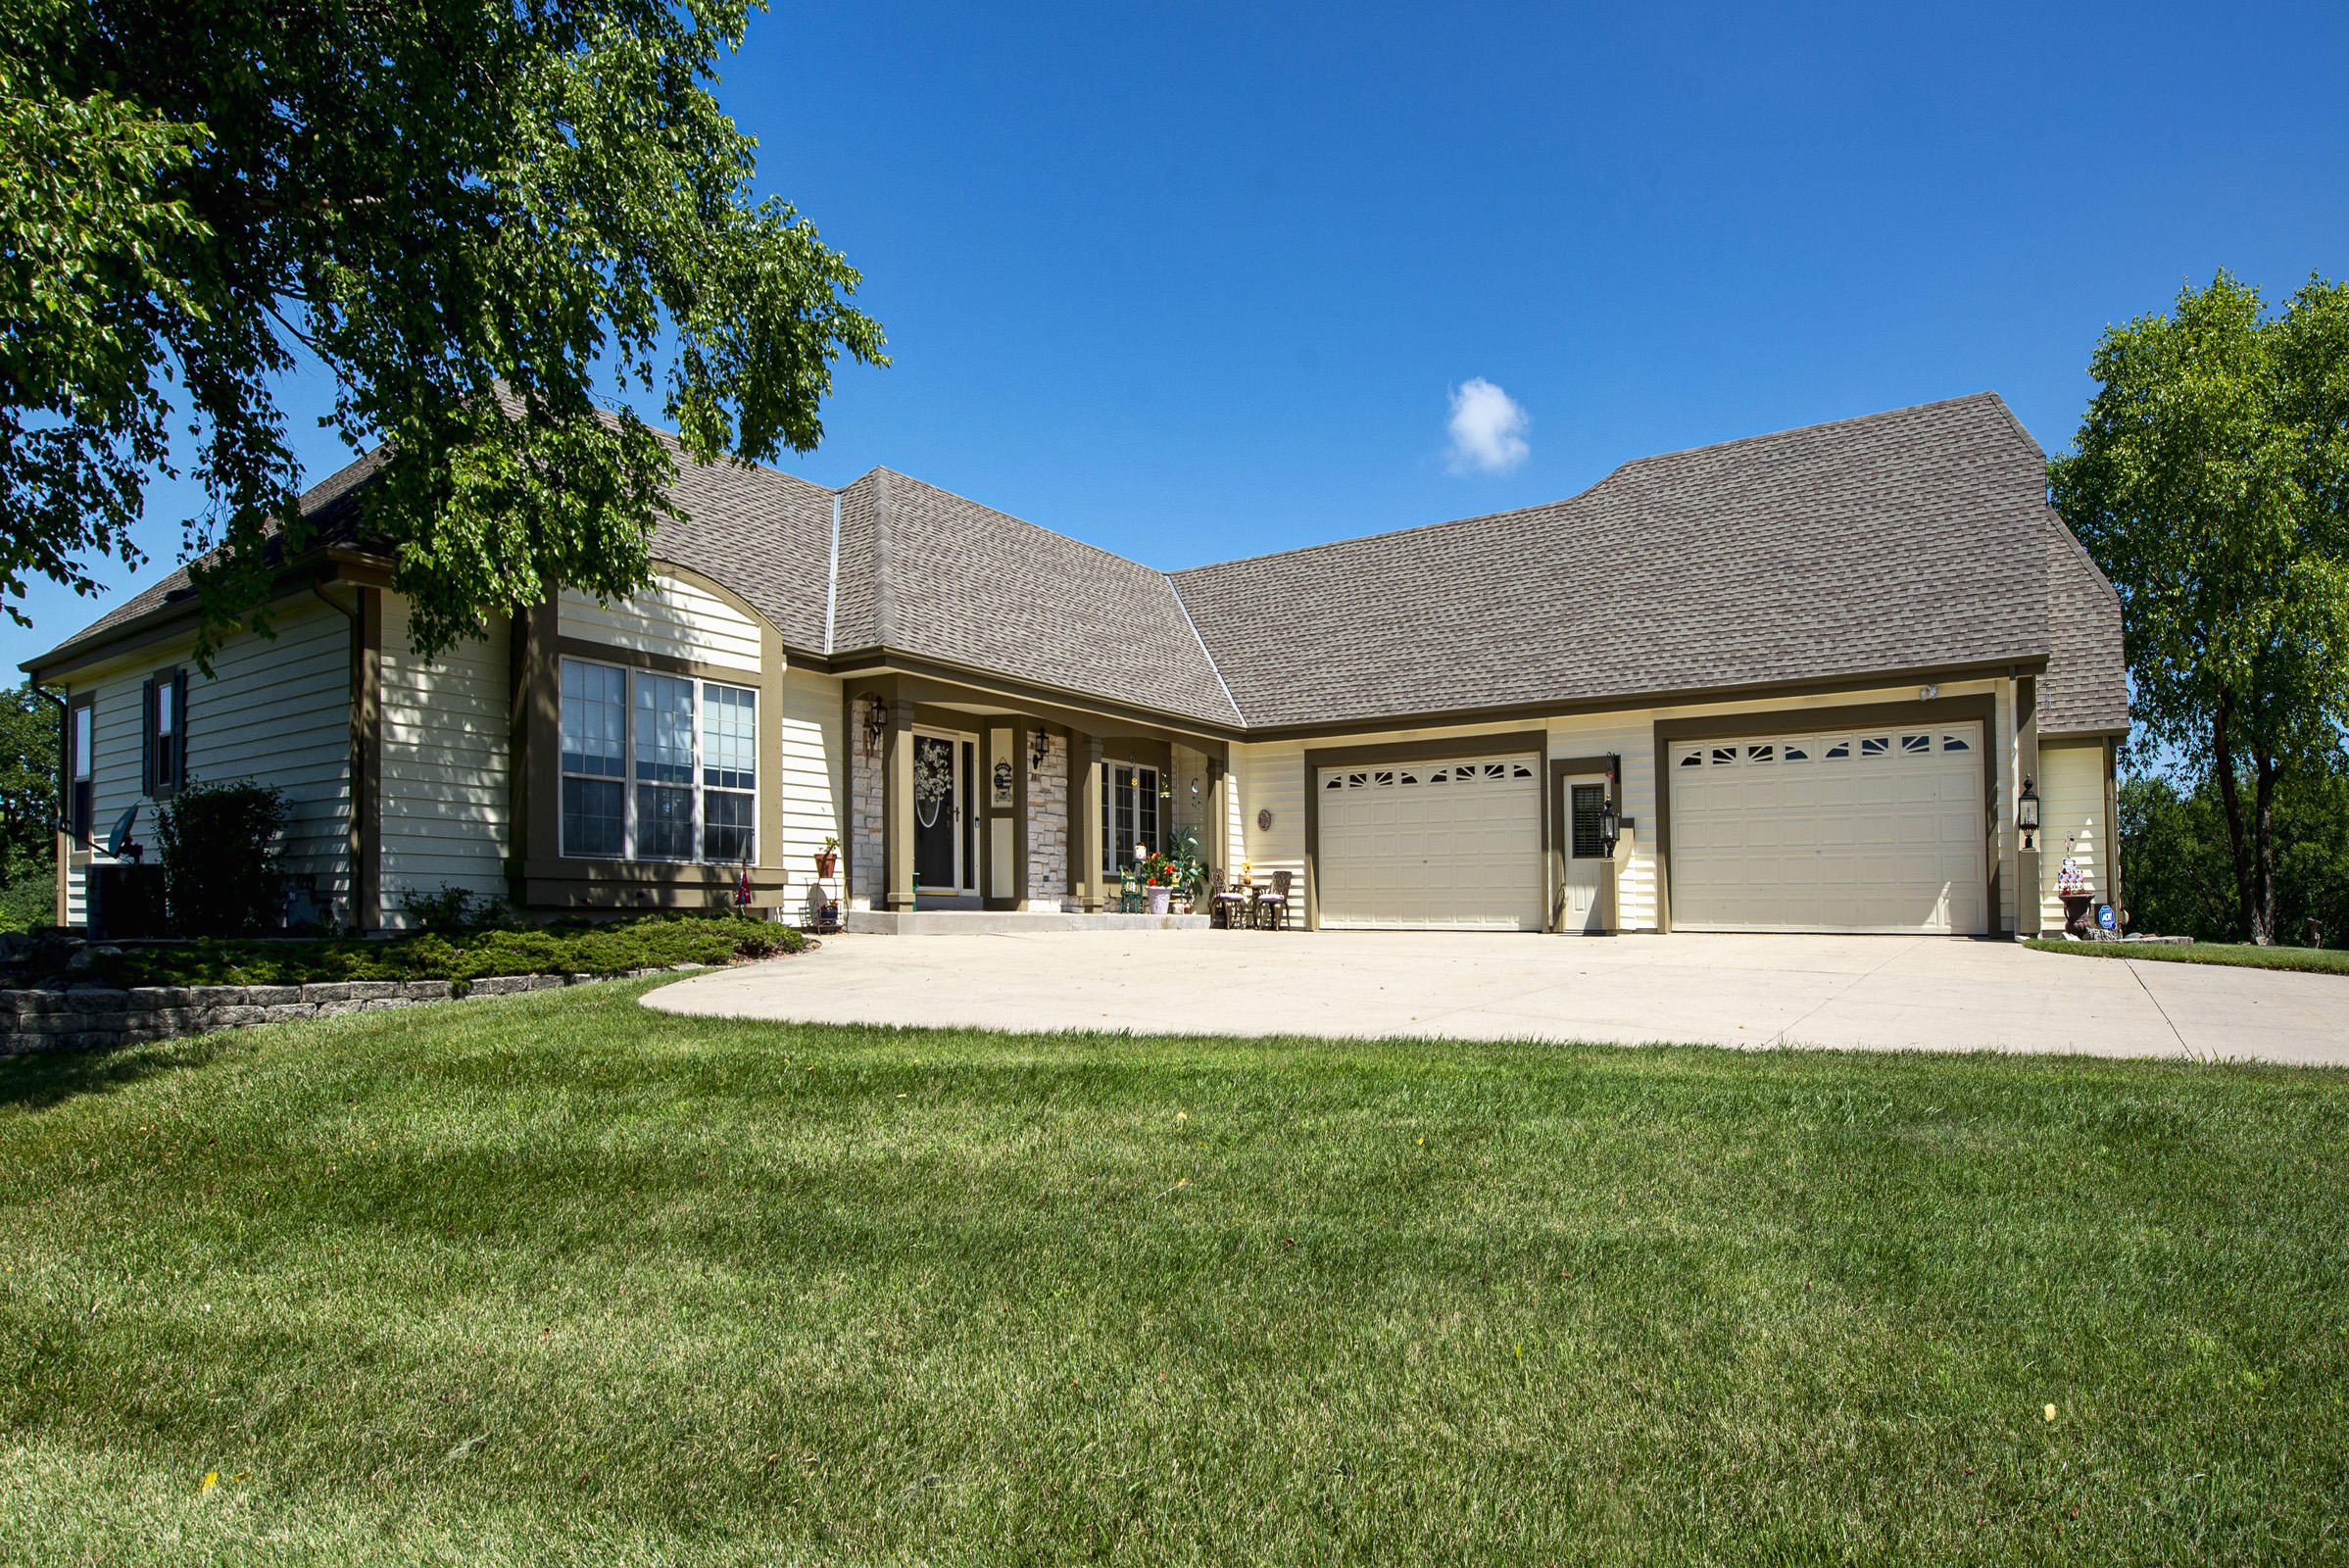 N46W28542 Willow Brook Ct, Delafield, Wisconsin 53029, 4 Bedrooms Bedrooms, 10 Rooms Rooms,3 BathroomsBathrooms,Single-Family,For Sale,Willow Brook Ct,1699679